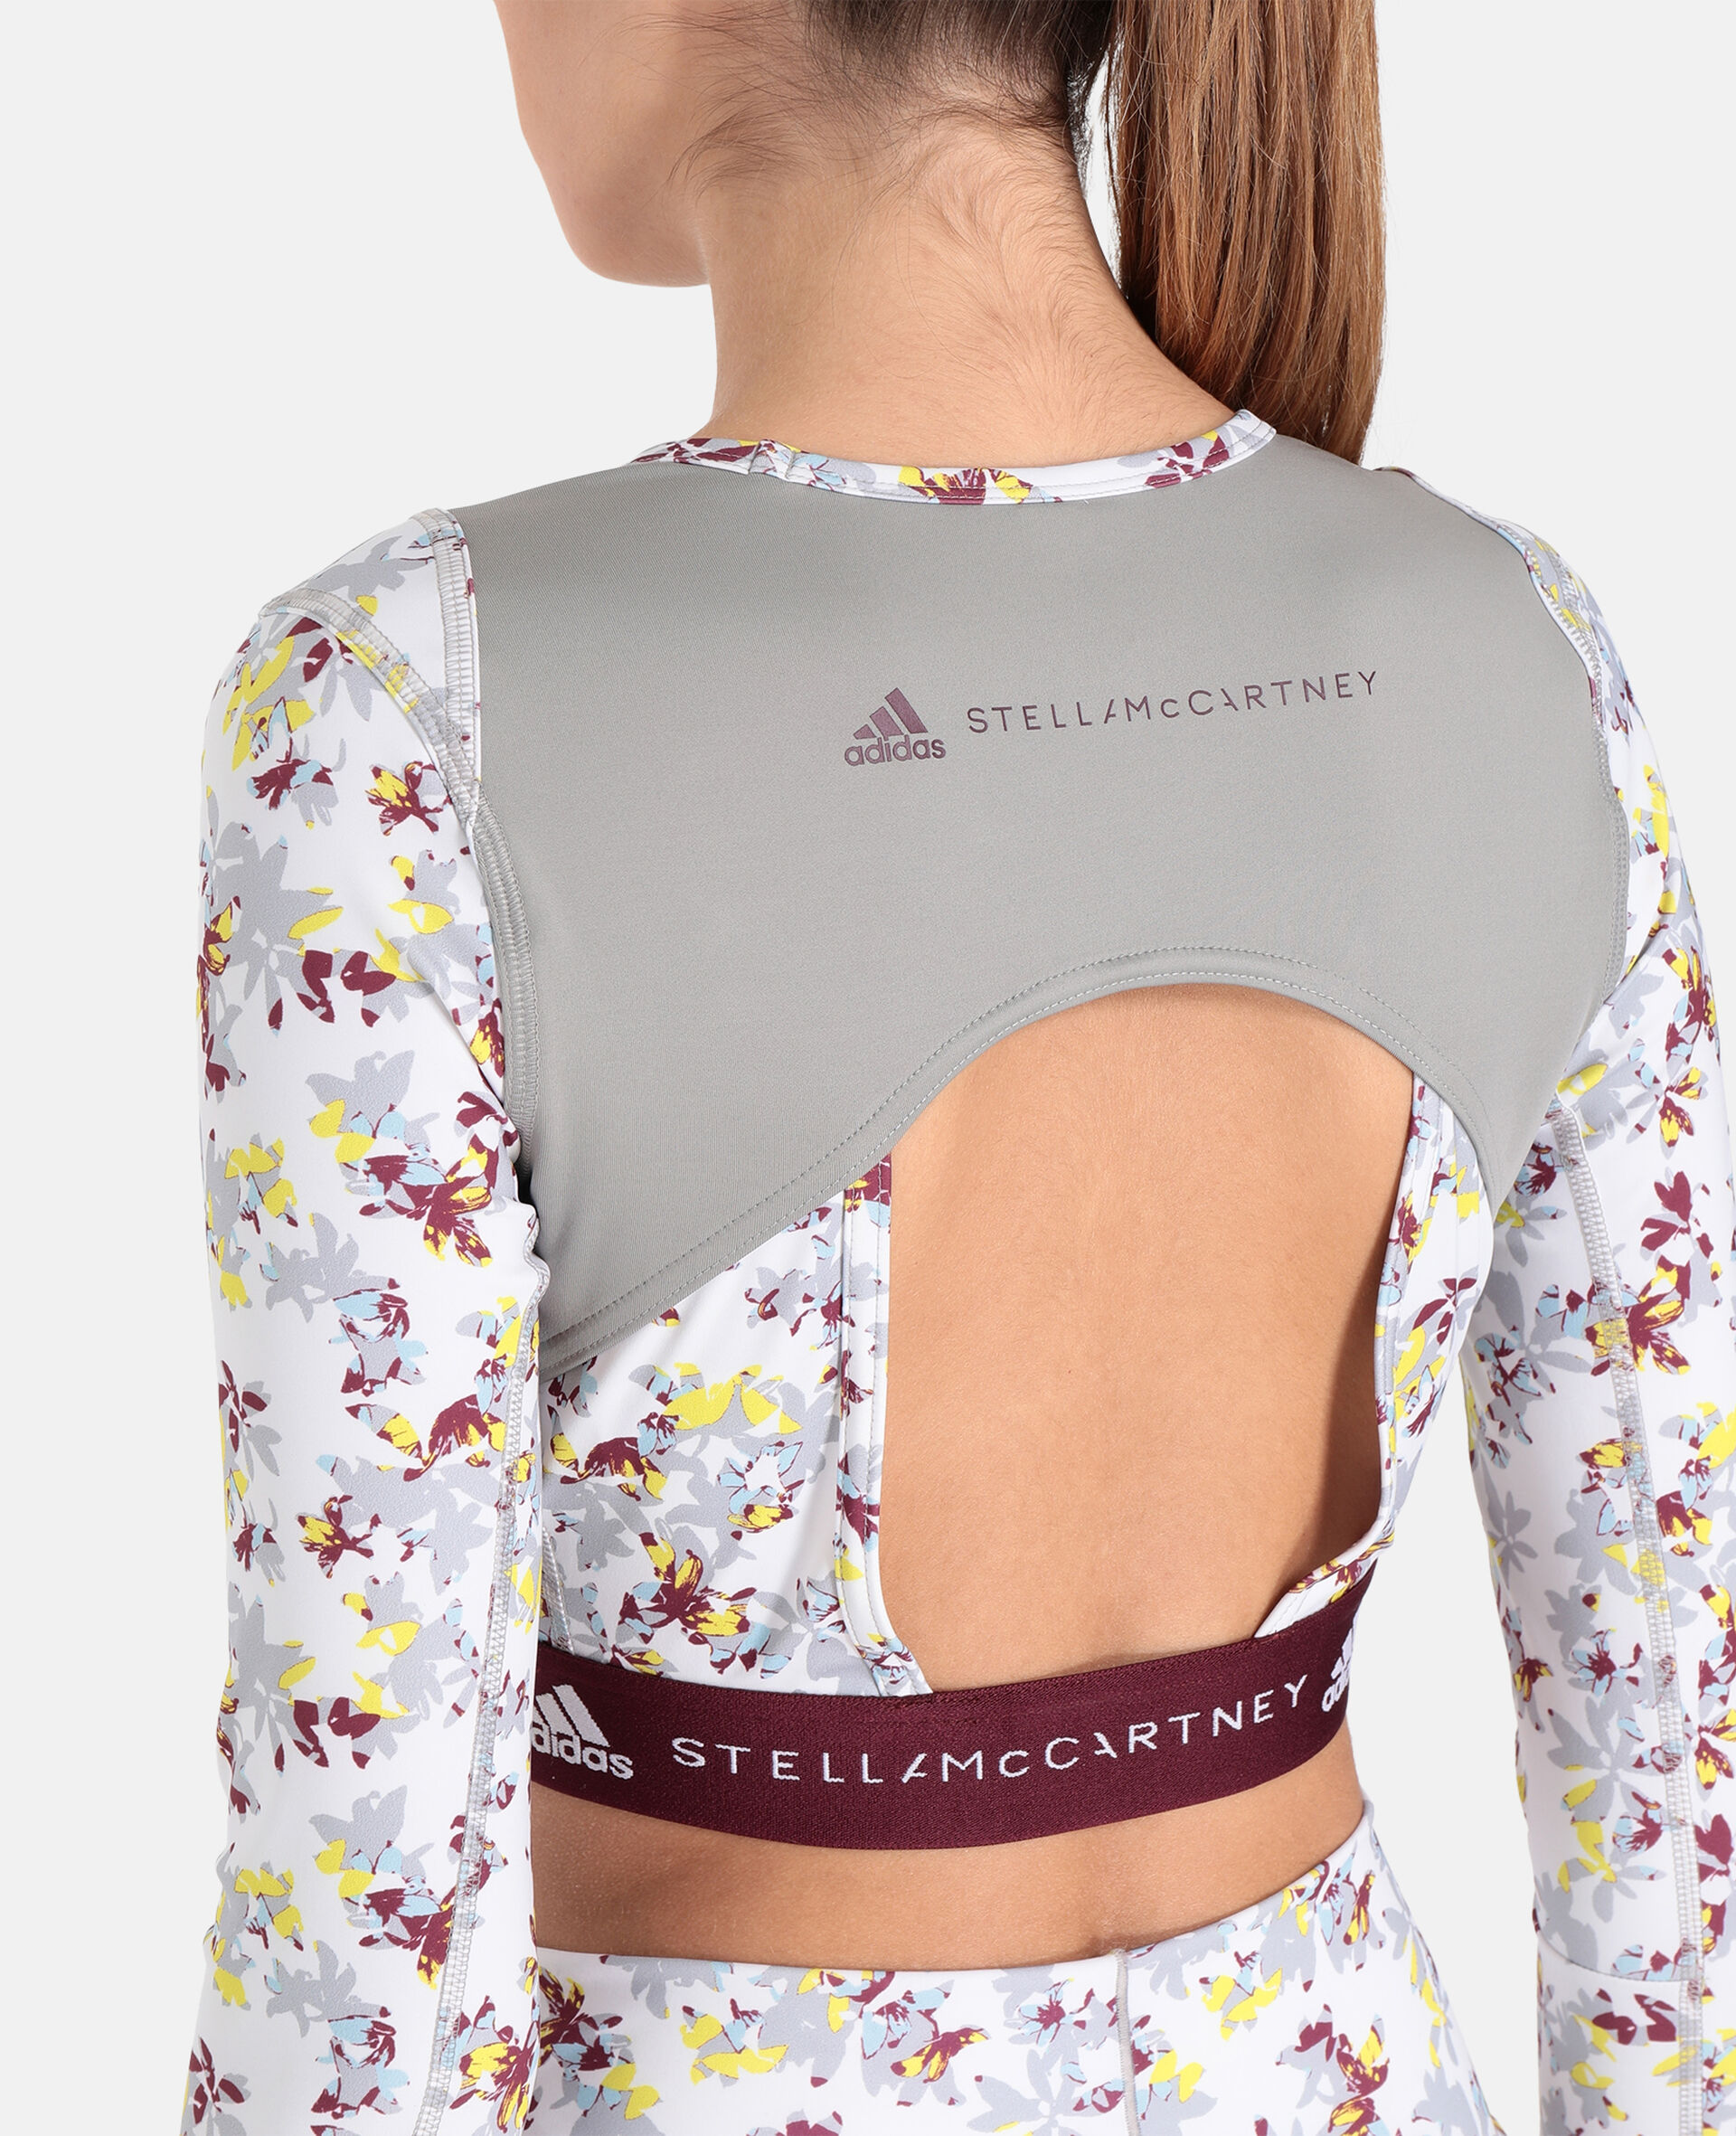 Future Playground Long-Sleeved Crop Top -White-large image number 3